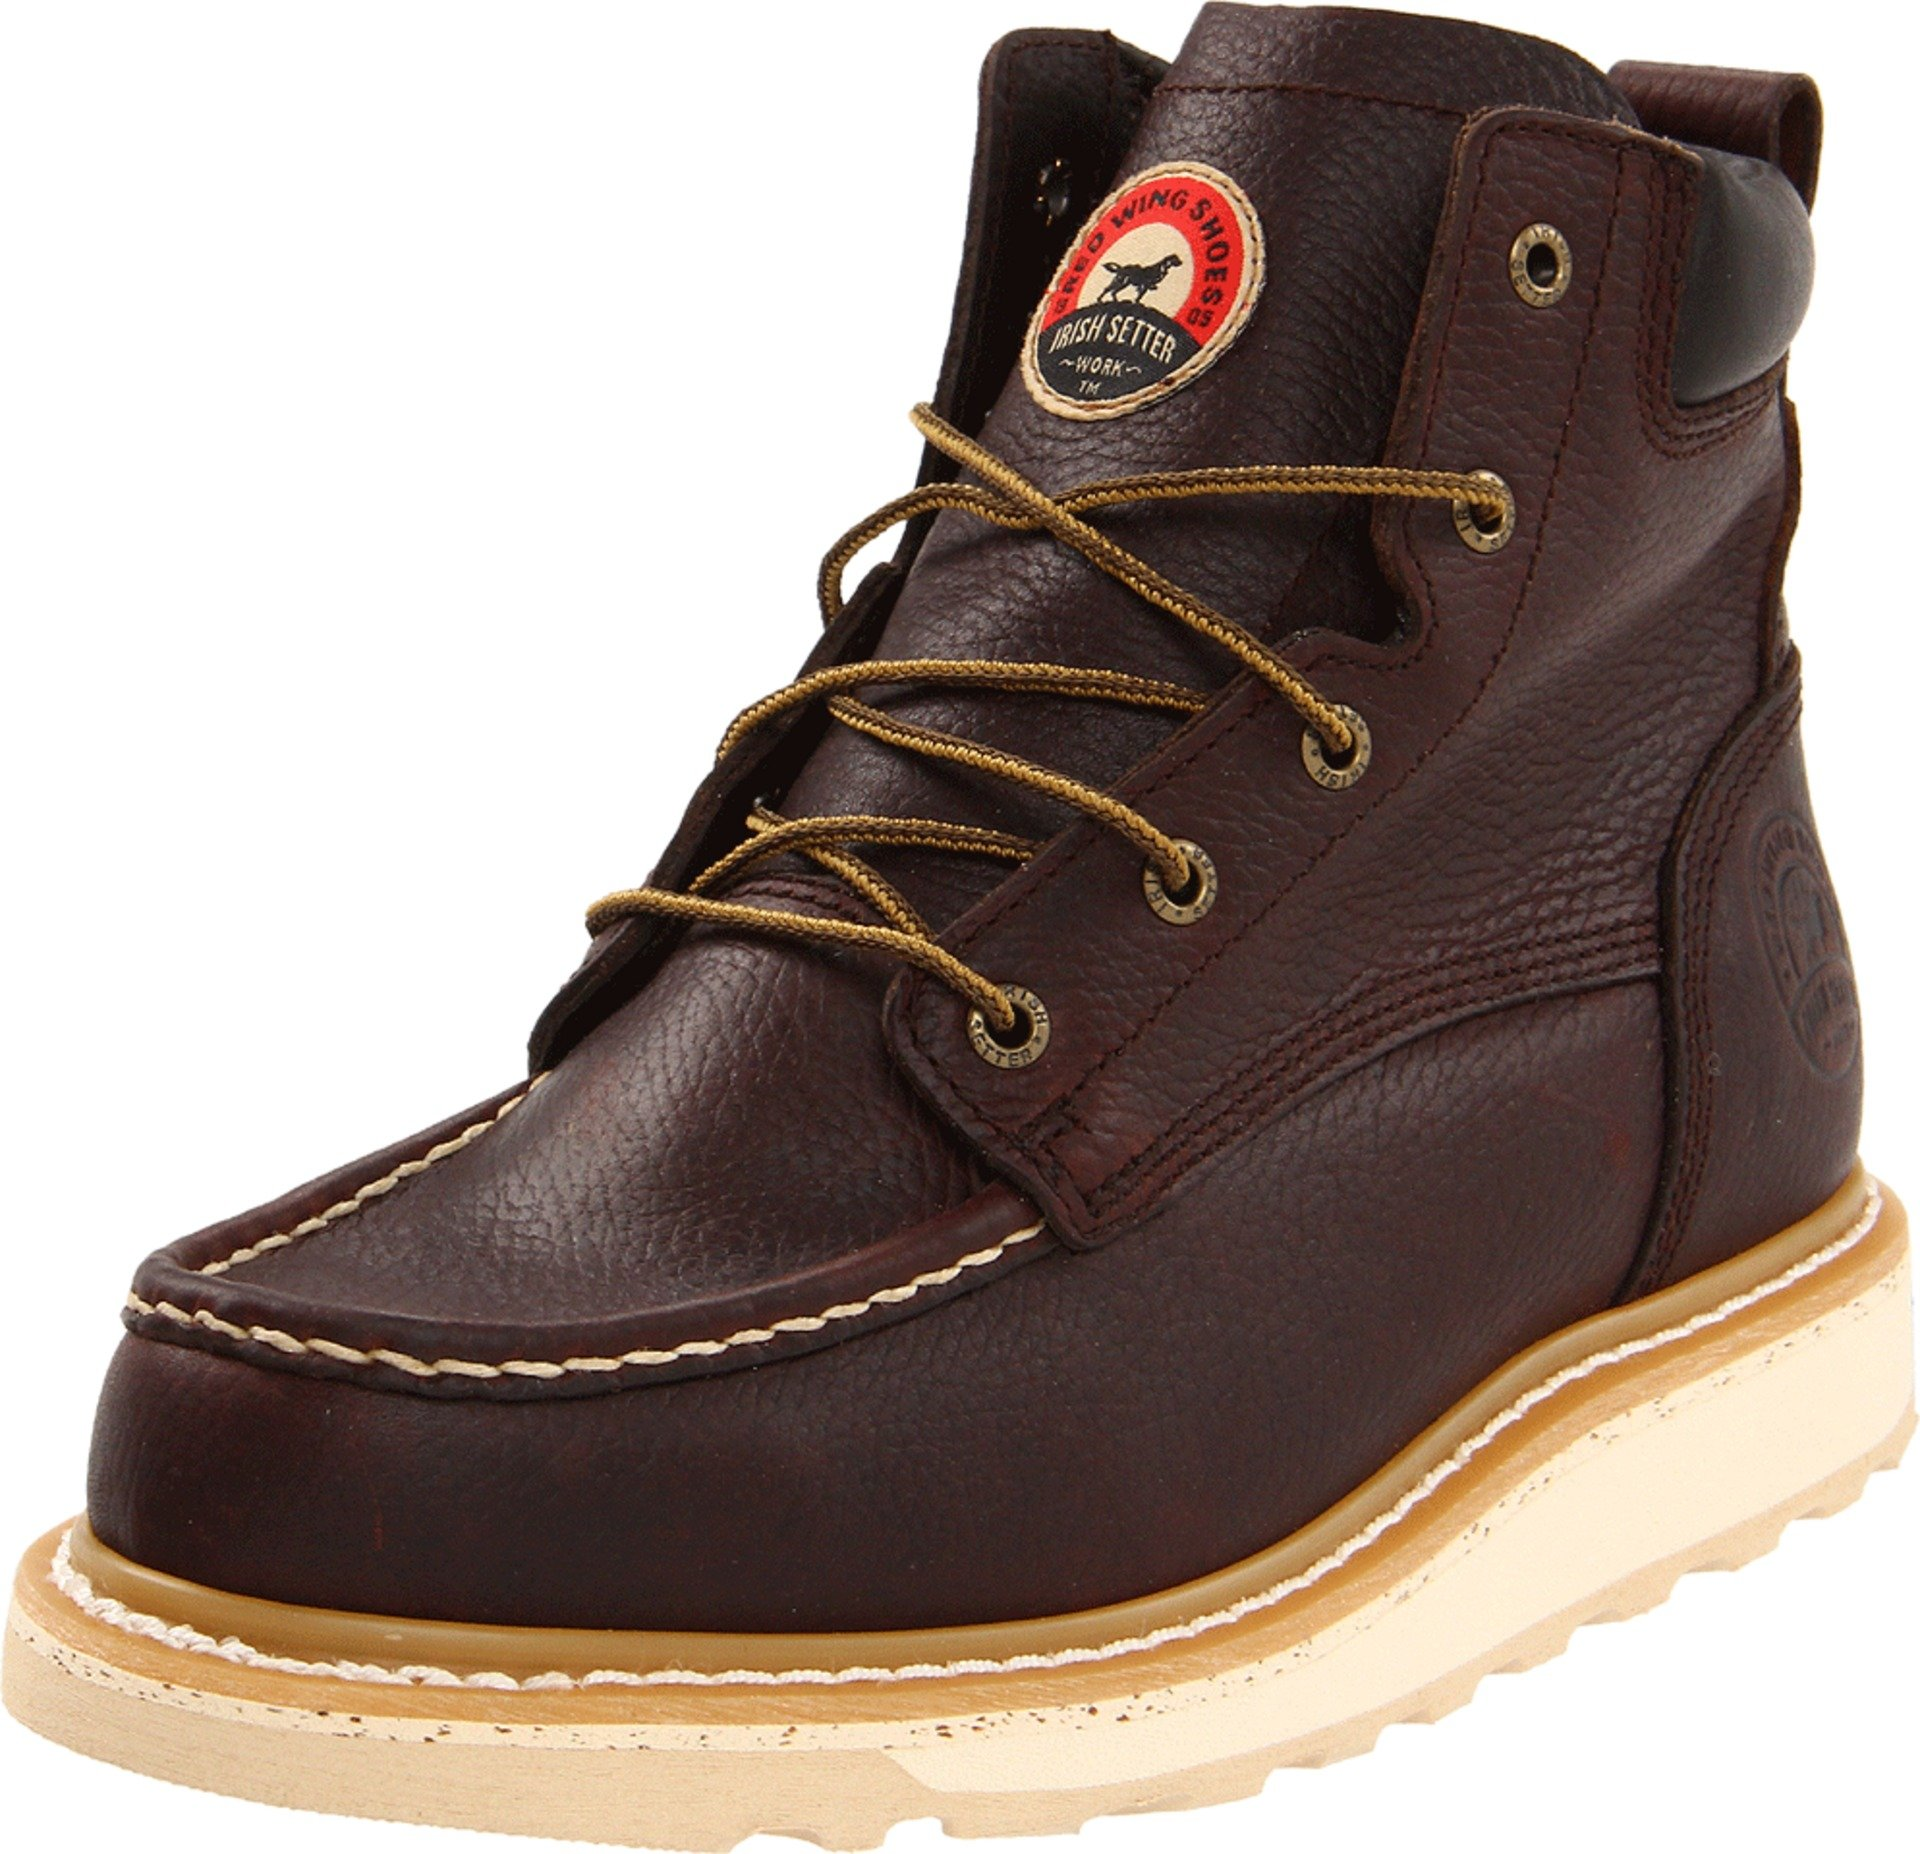 Irish Setter Men's 6'' 83605 Work Boot,Brown,9 D US by Irish Setter